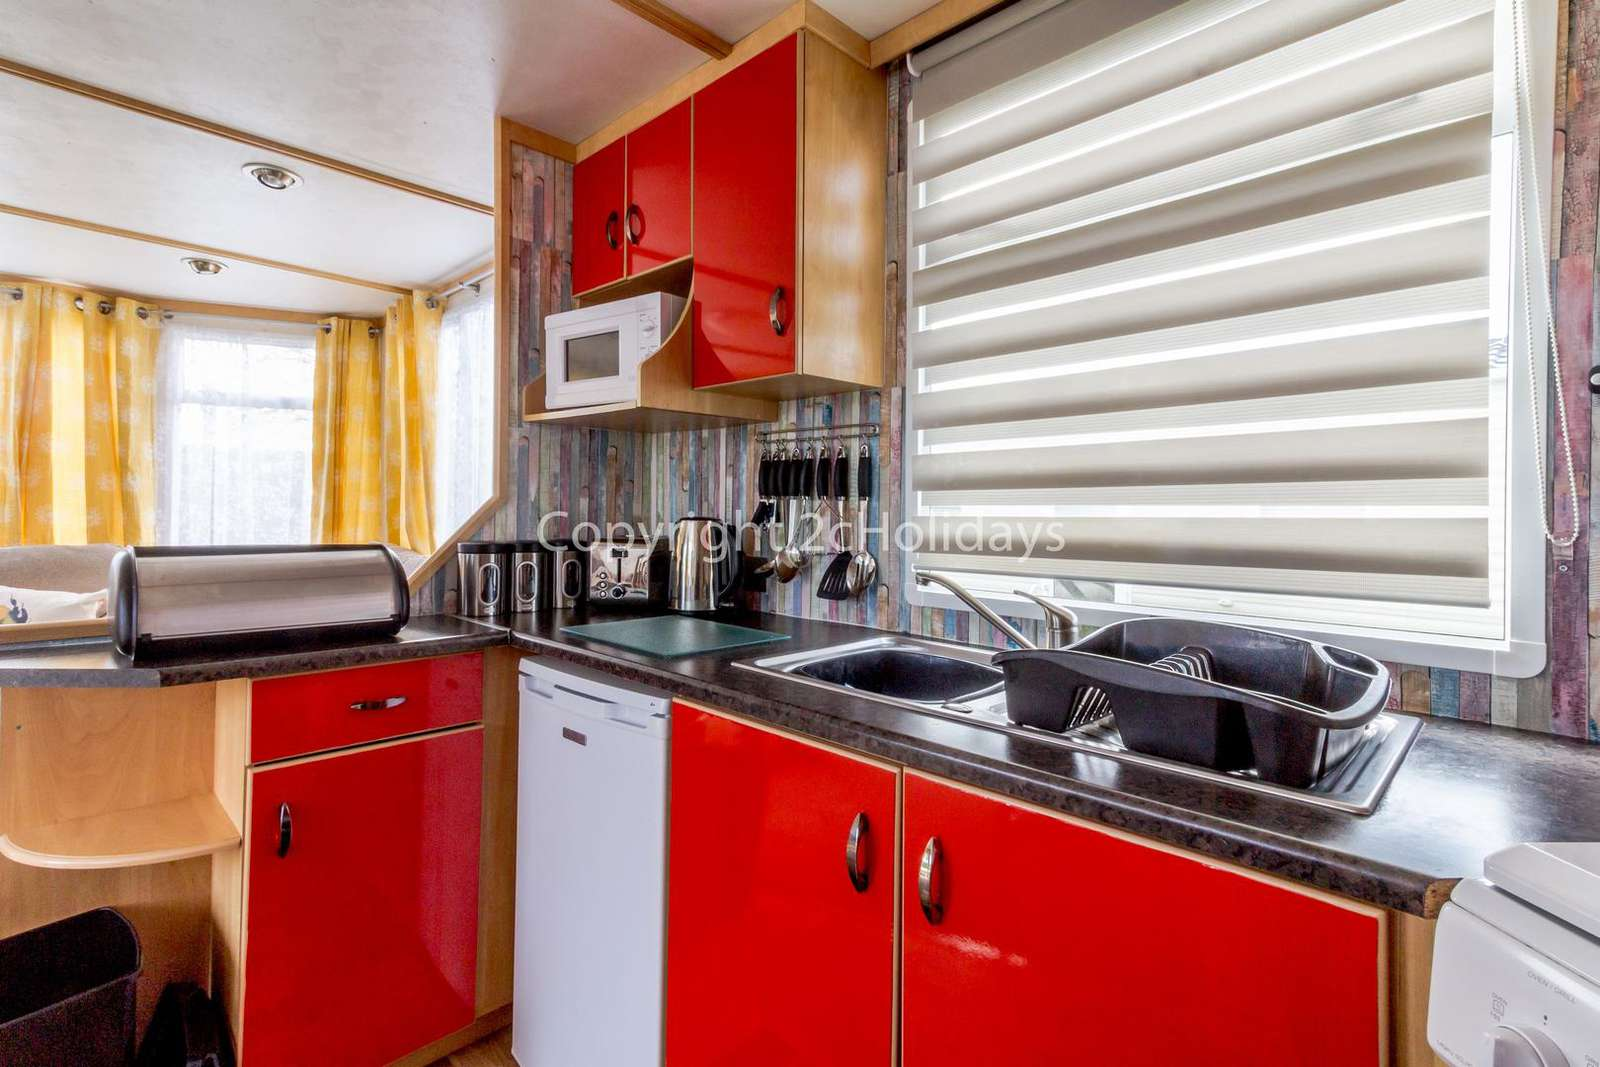 Fully equipped kitchen, perfect for self-catering accommodation!